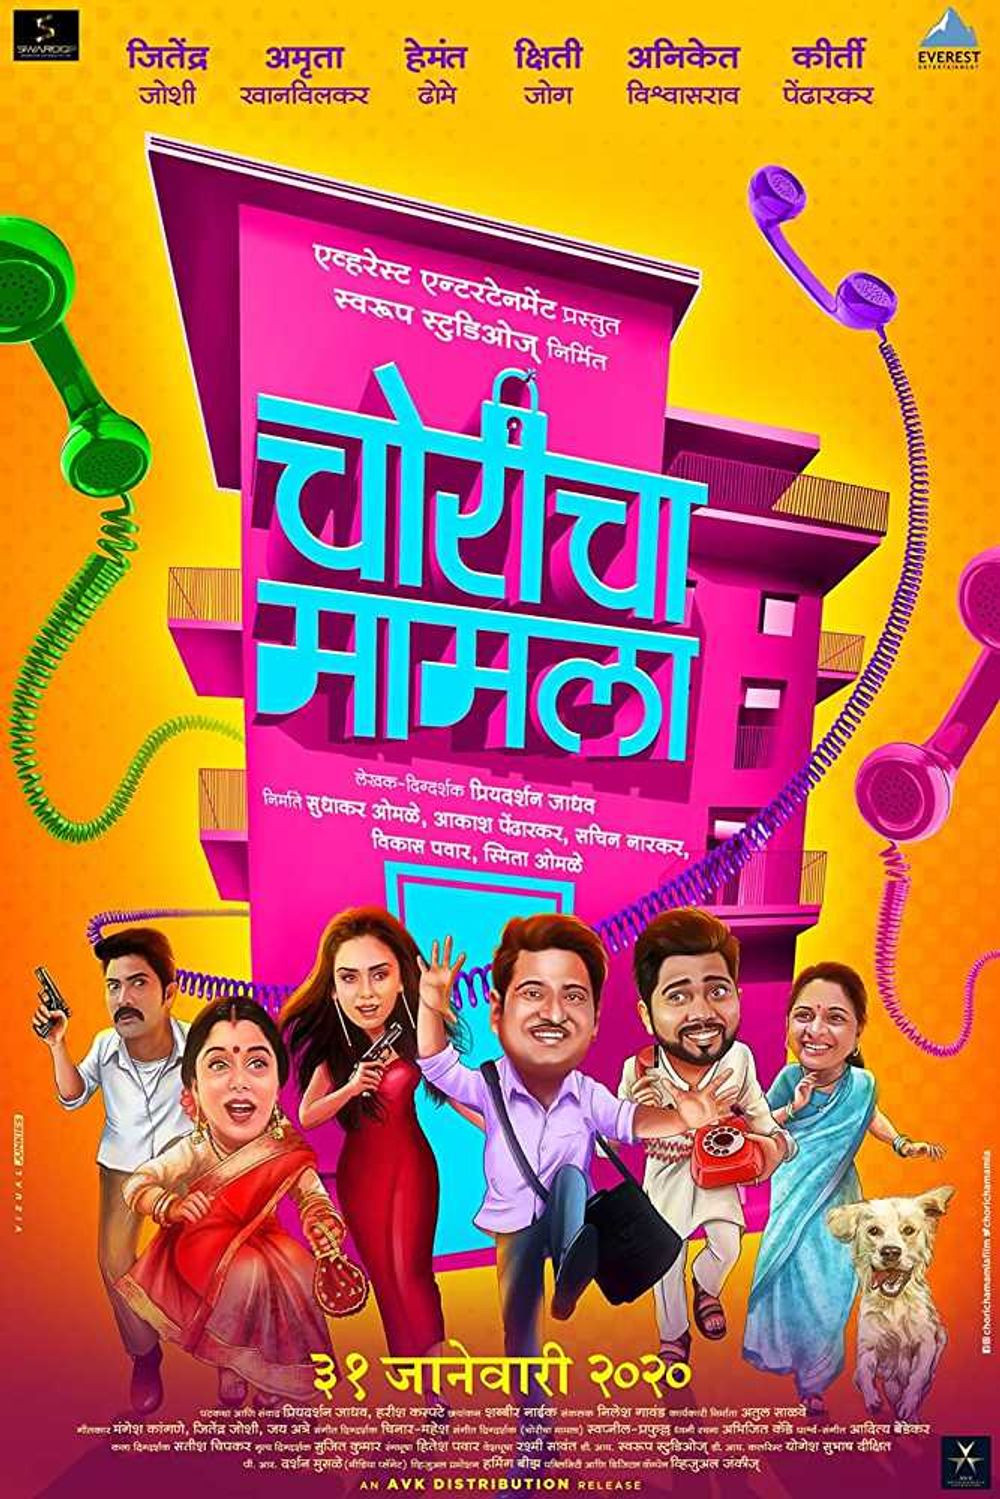 Choricha Mamla 2020 Marathi 800MB PreDVDRip Download